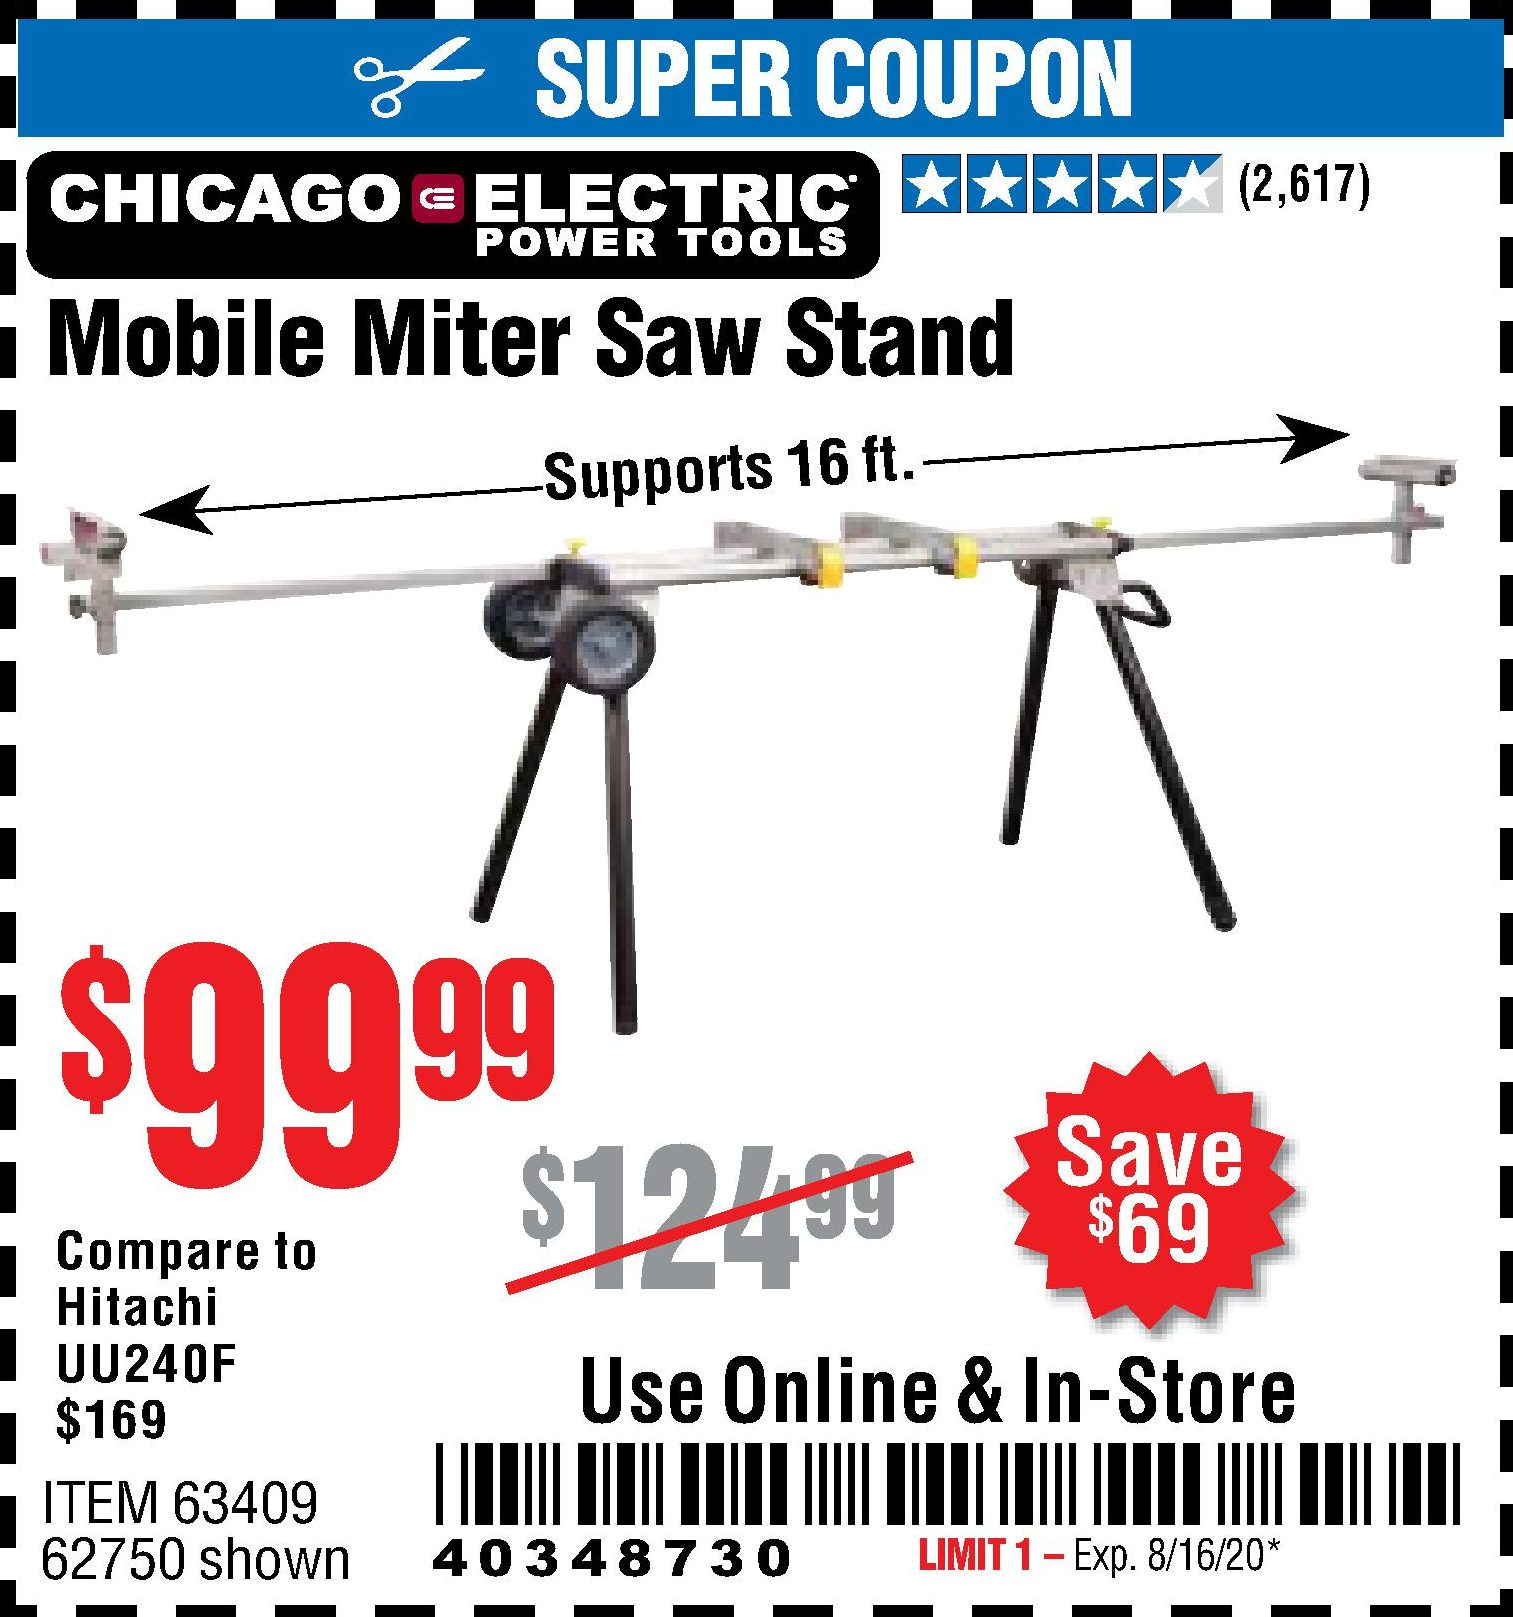 Harbor Freight CHICAGO ELECTRIC HEAVY DUTY MOBILE MITER SAW STAND coupon